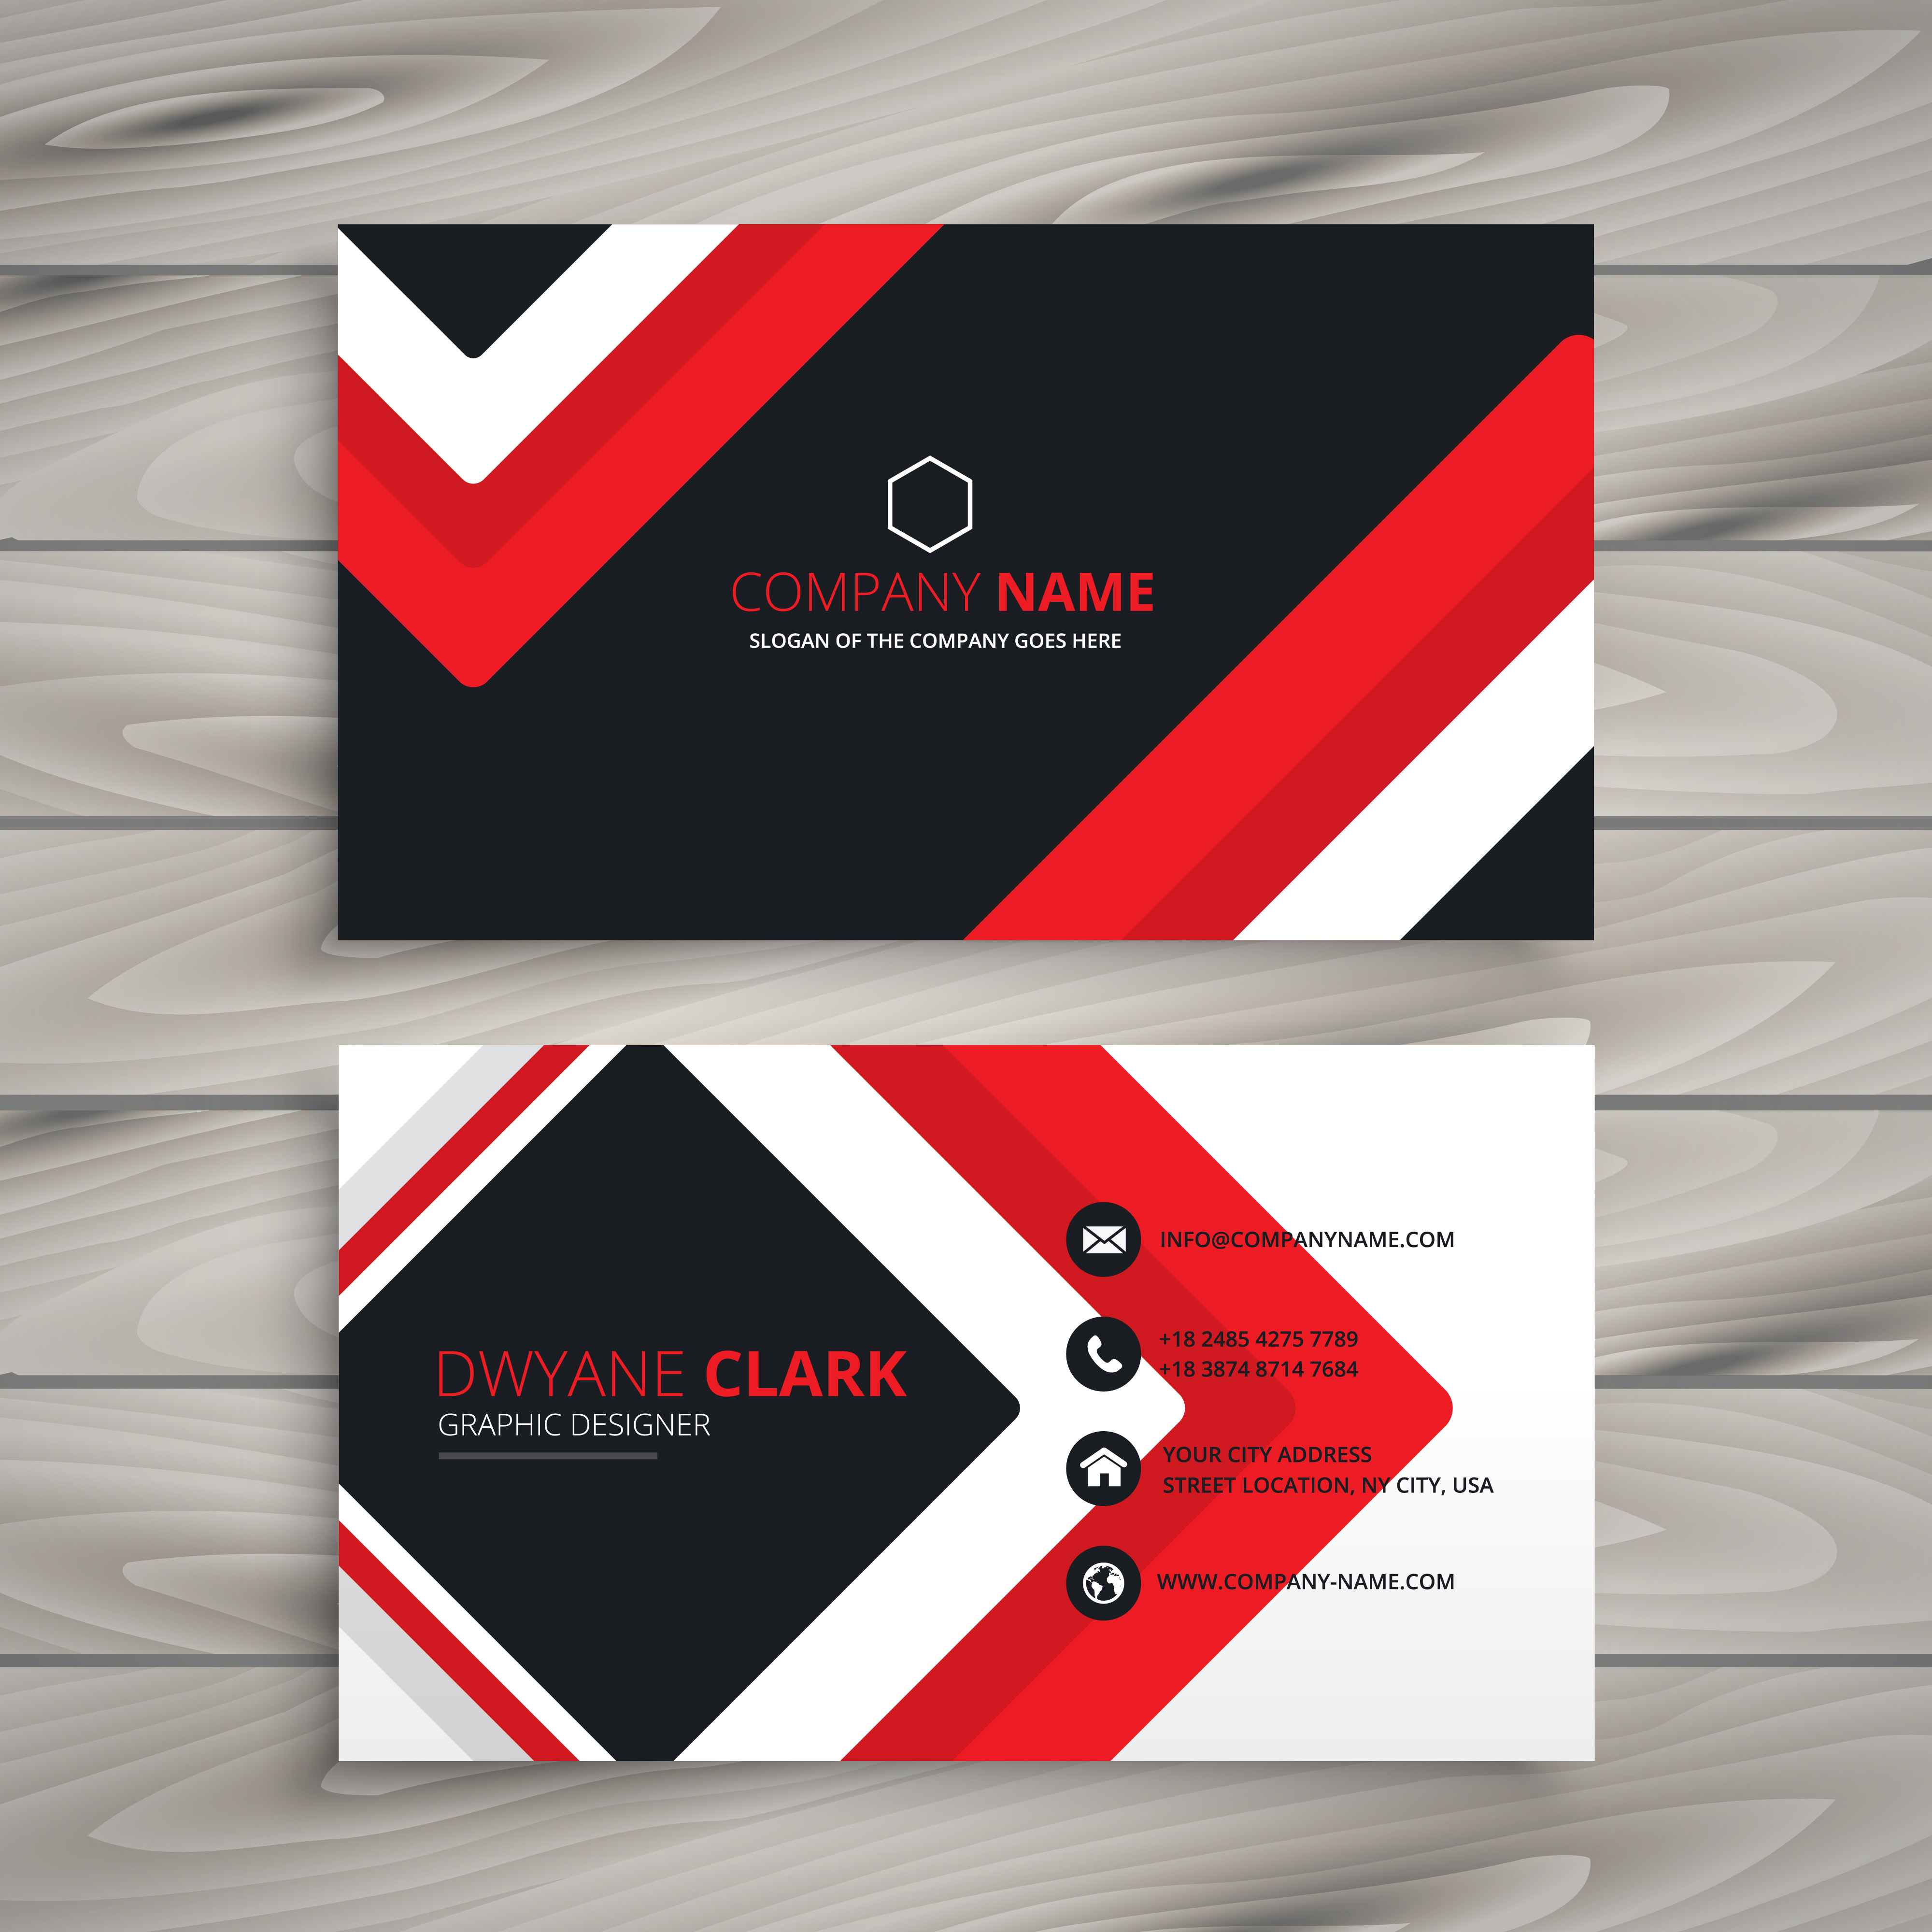 Blue Corporate Stationary Pack By Betty Design: Red Black Business Card Vector Design Illustration